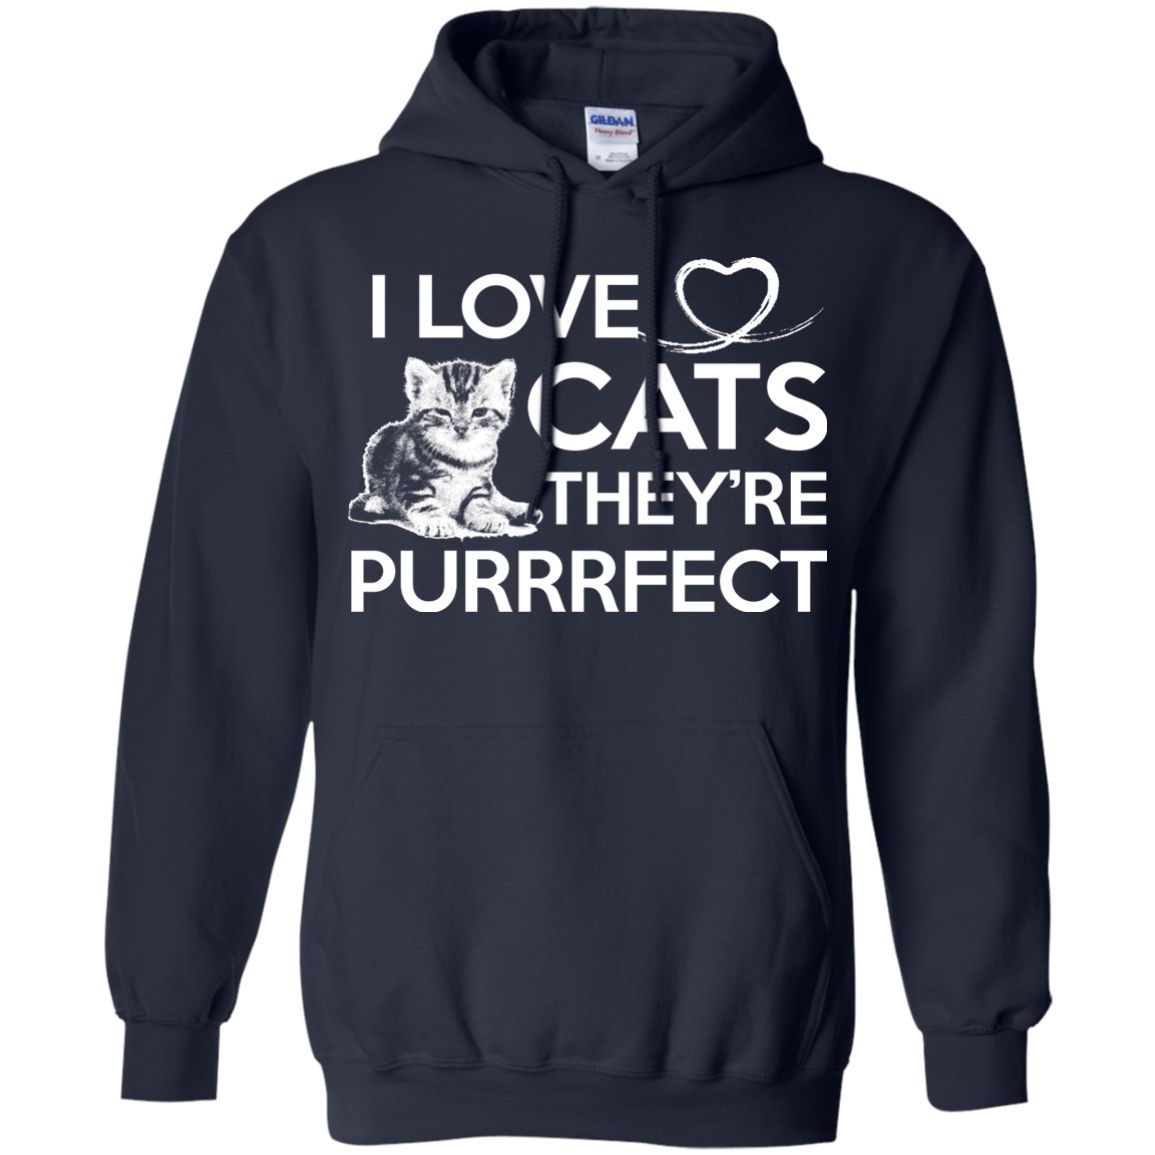 I love cats thyure purrrfect perfect hoodie products pinterest